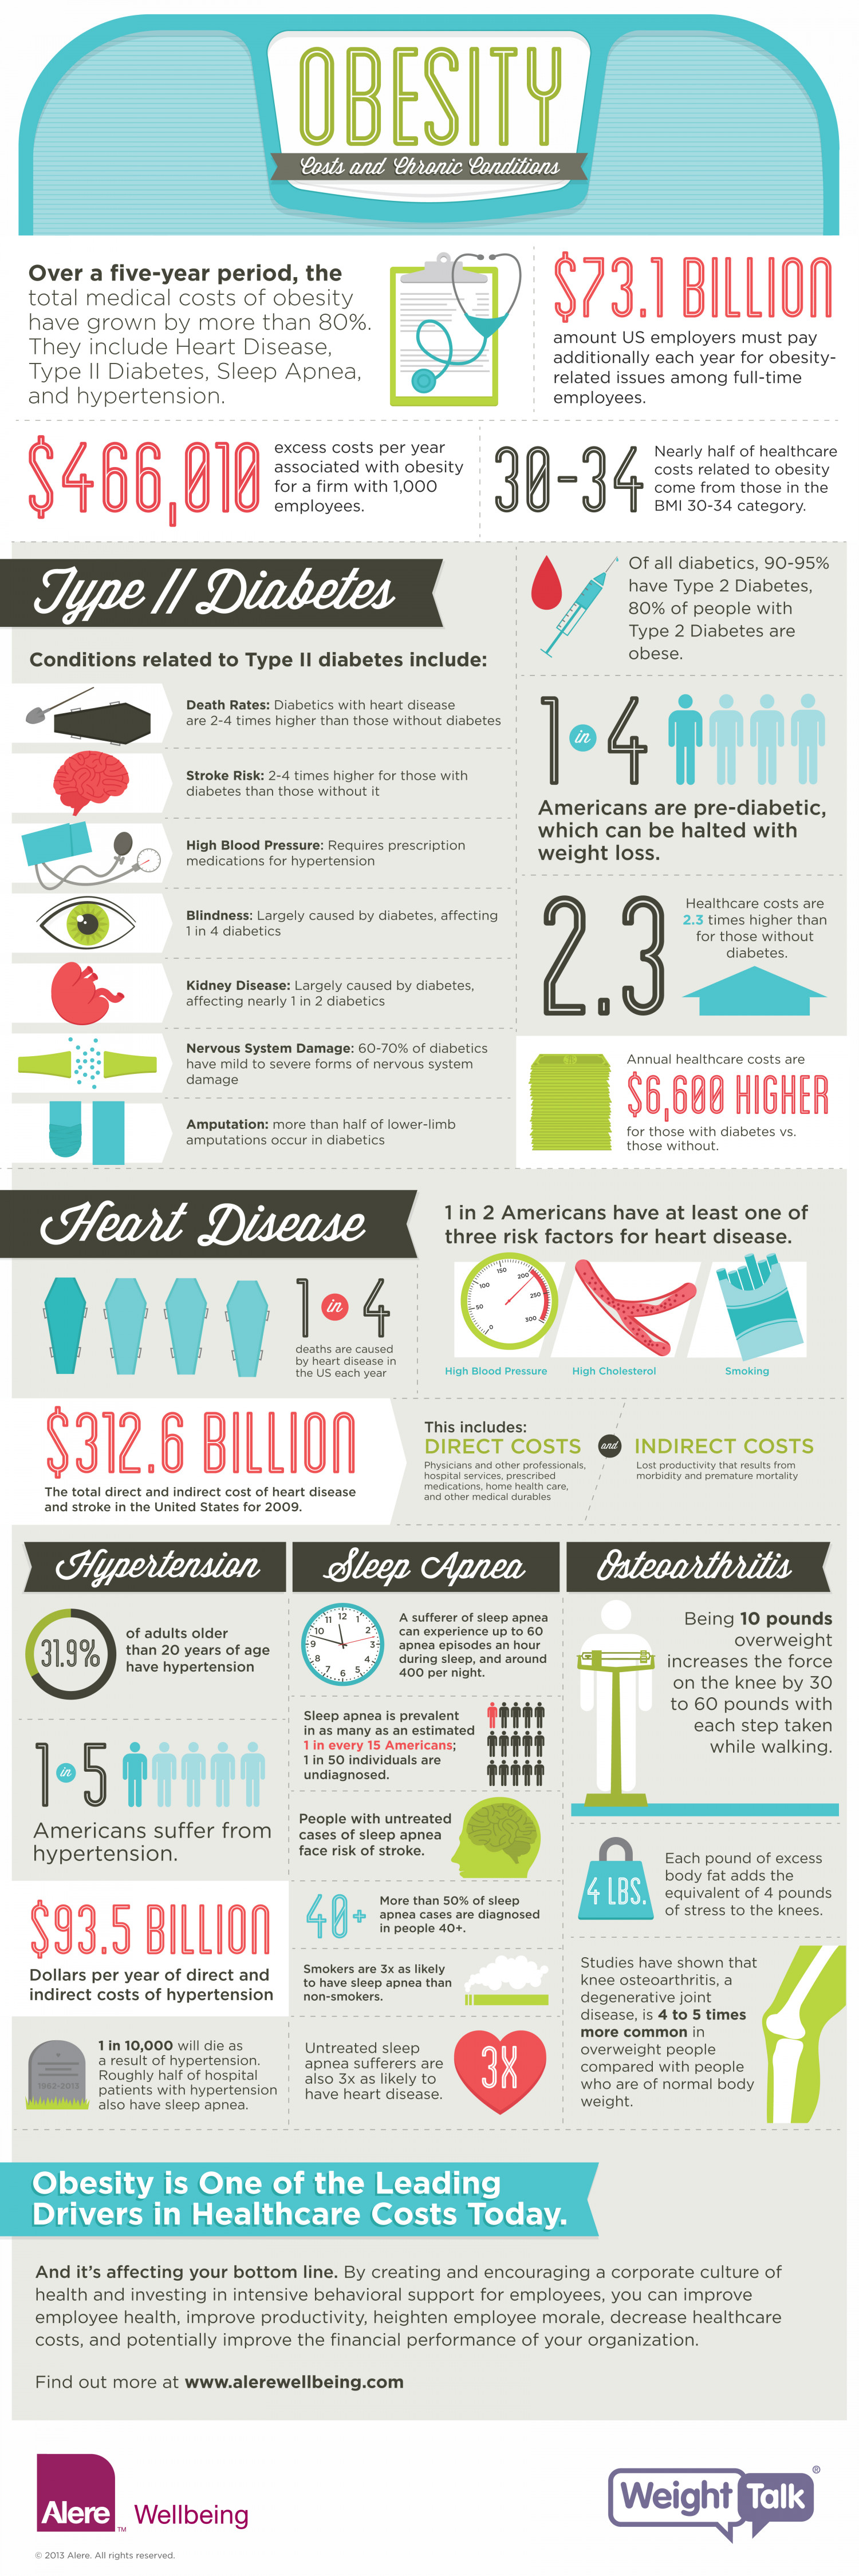 Obesity: Costs & Chronic Conditions Infographic